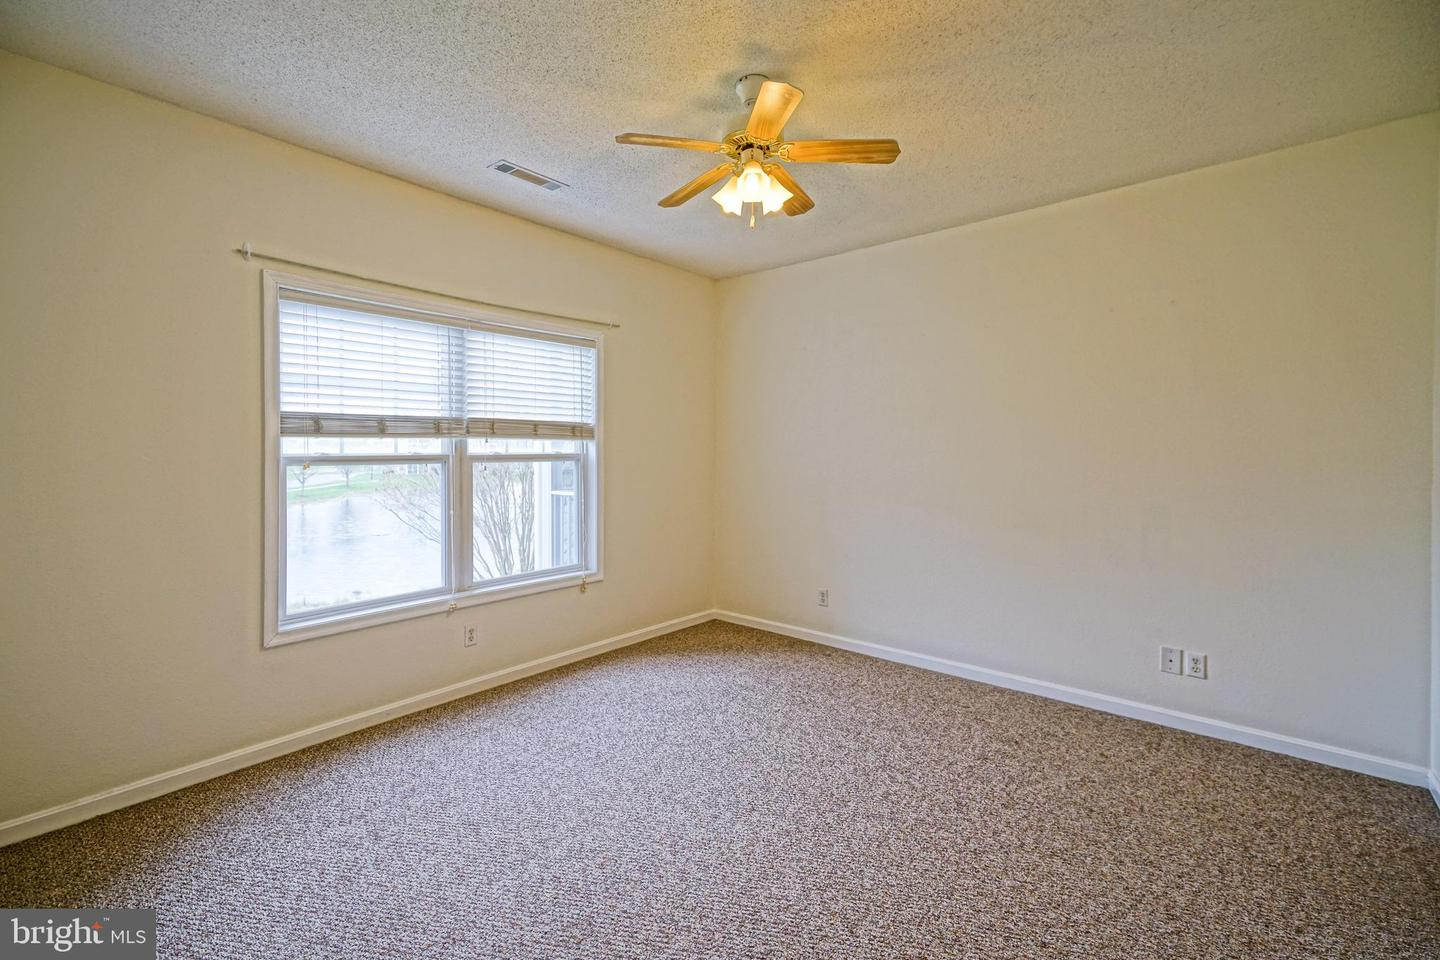 DESU139032-301664481856-2019-06-24-14-51-57 33156 N Village Loop #4202 | Lewes, DE Real Estate For Sale | MLS# Desu139032  - Lee Ann Group